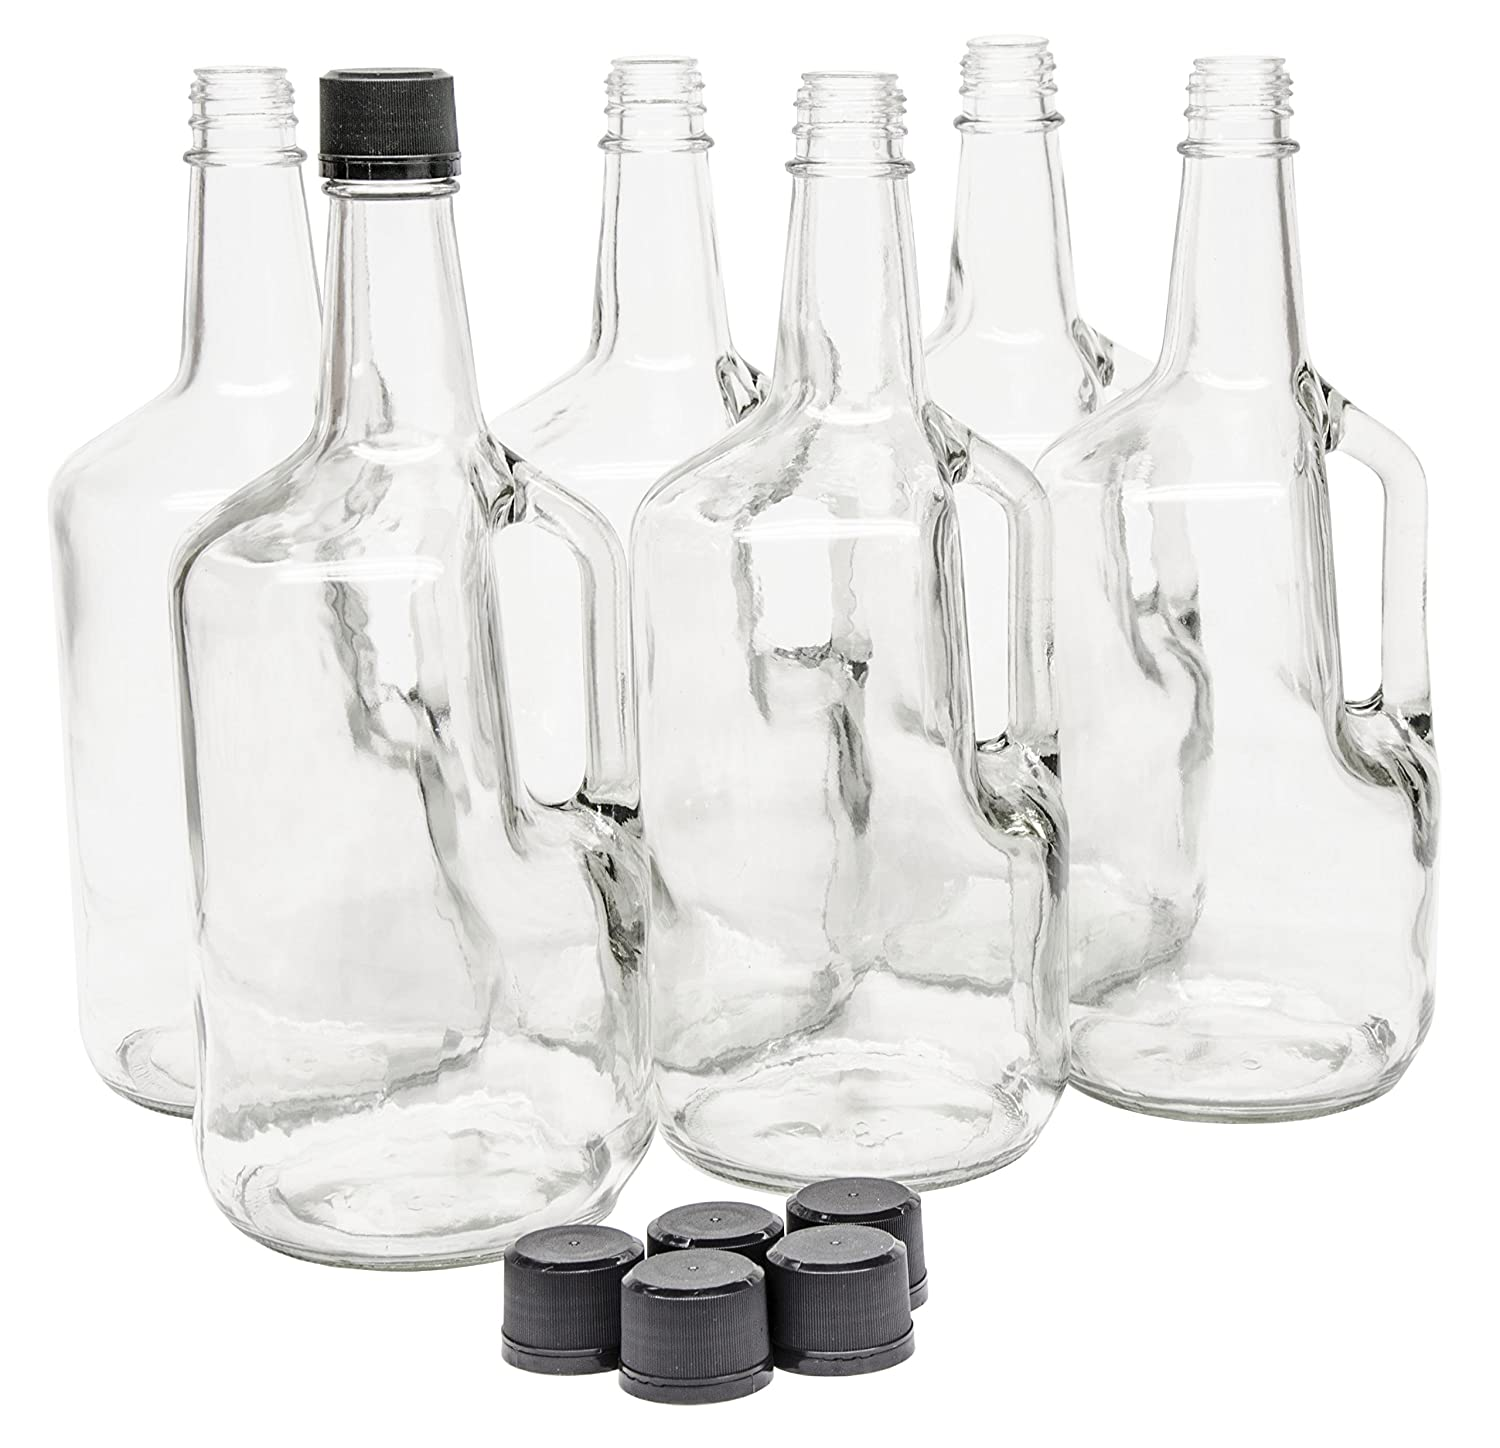 North Mountain Supply 1.75 Liter Clear Glass Jug with Handle and Black Plastic Tamper Evident Lids Case of 6